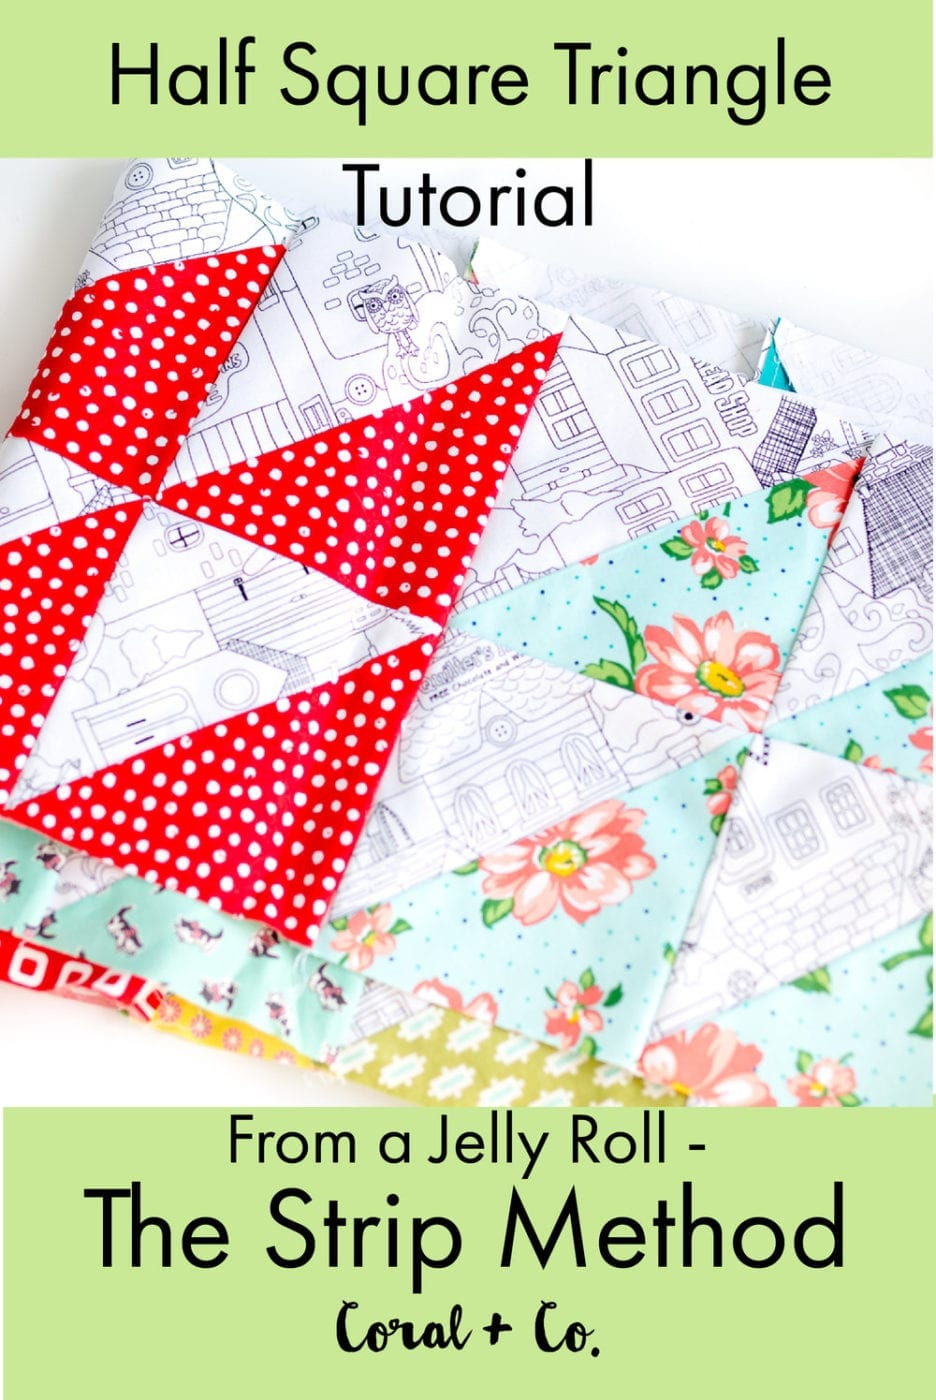 jelly-roll-strip-method-half-square-triangle-tutorial-coral-and-co